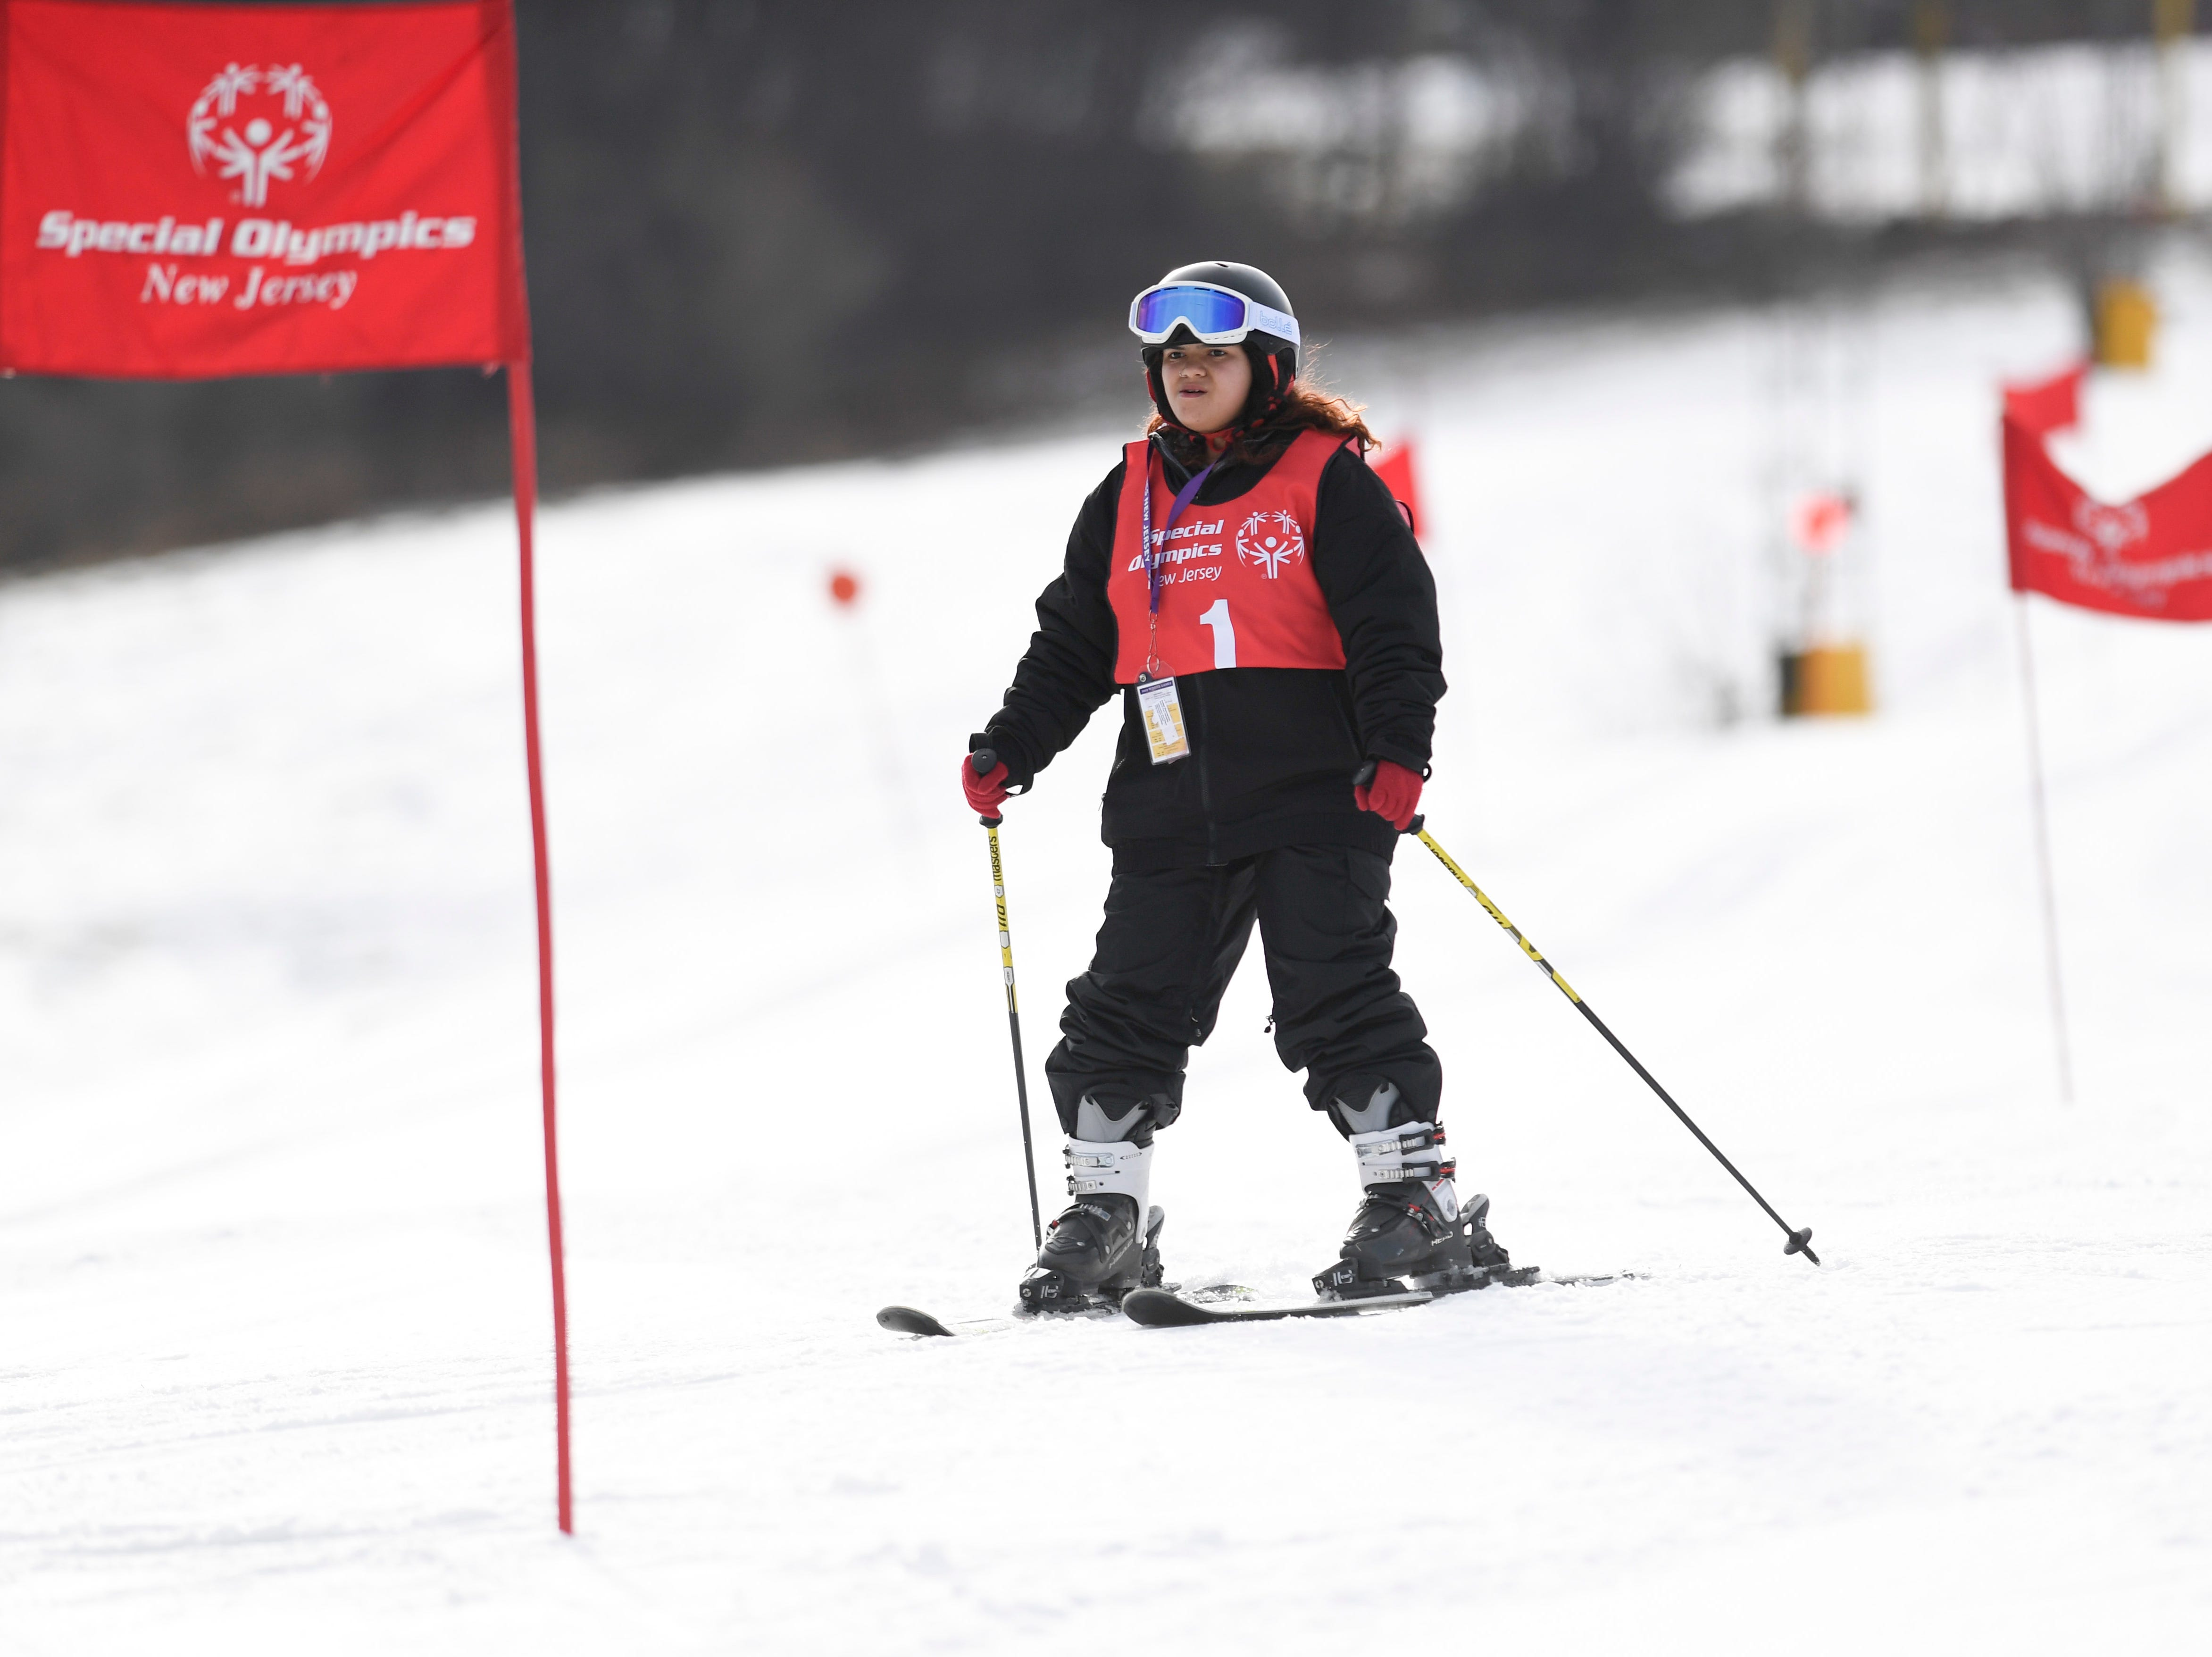 Amber Concepcion of Union City competes in the giant slalom during the Special Olympics New Jersey 2019 Winter Games on Tuesday, Feb. 5, 2019, in Vernon.